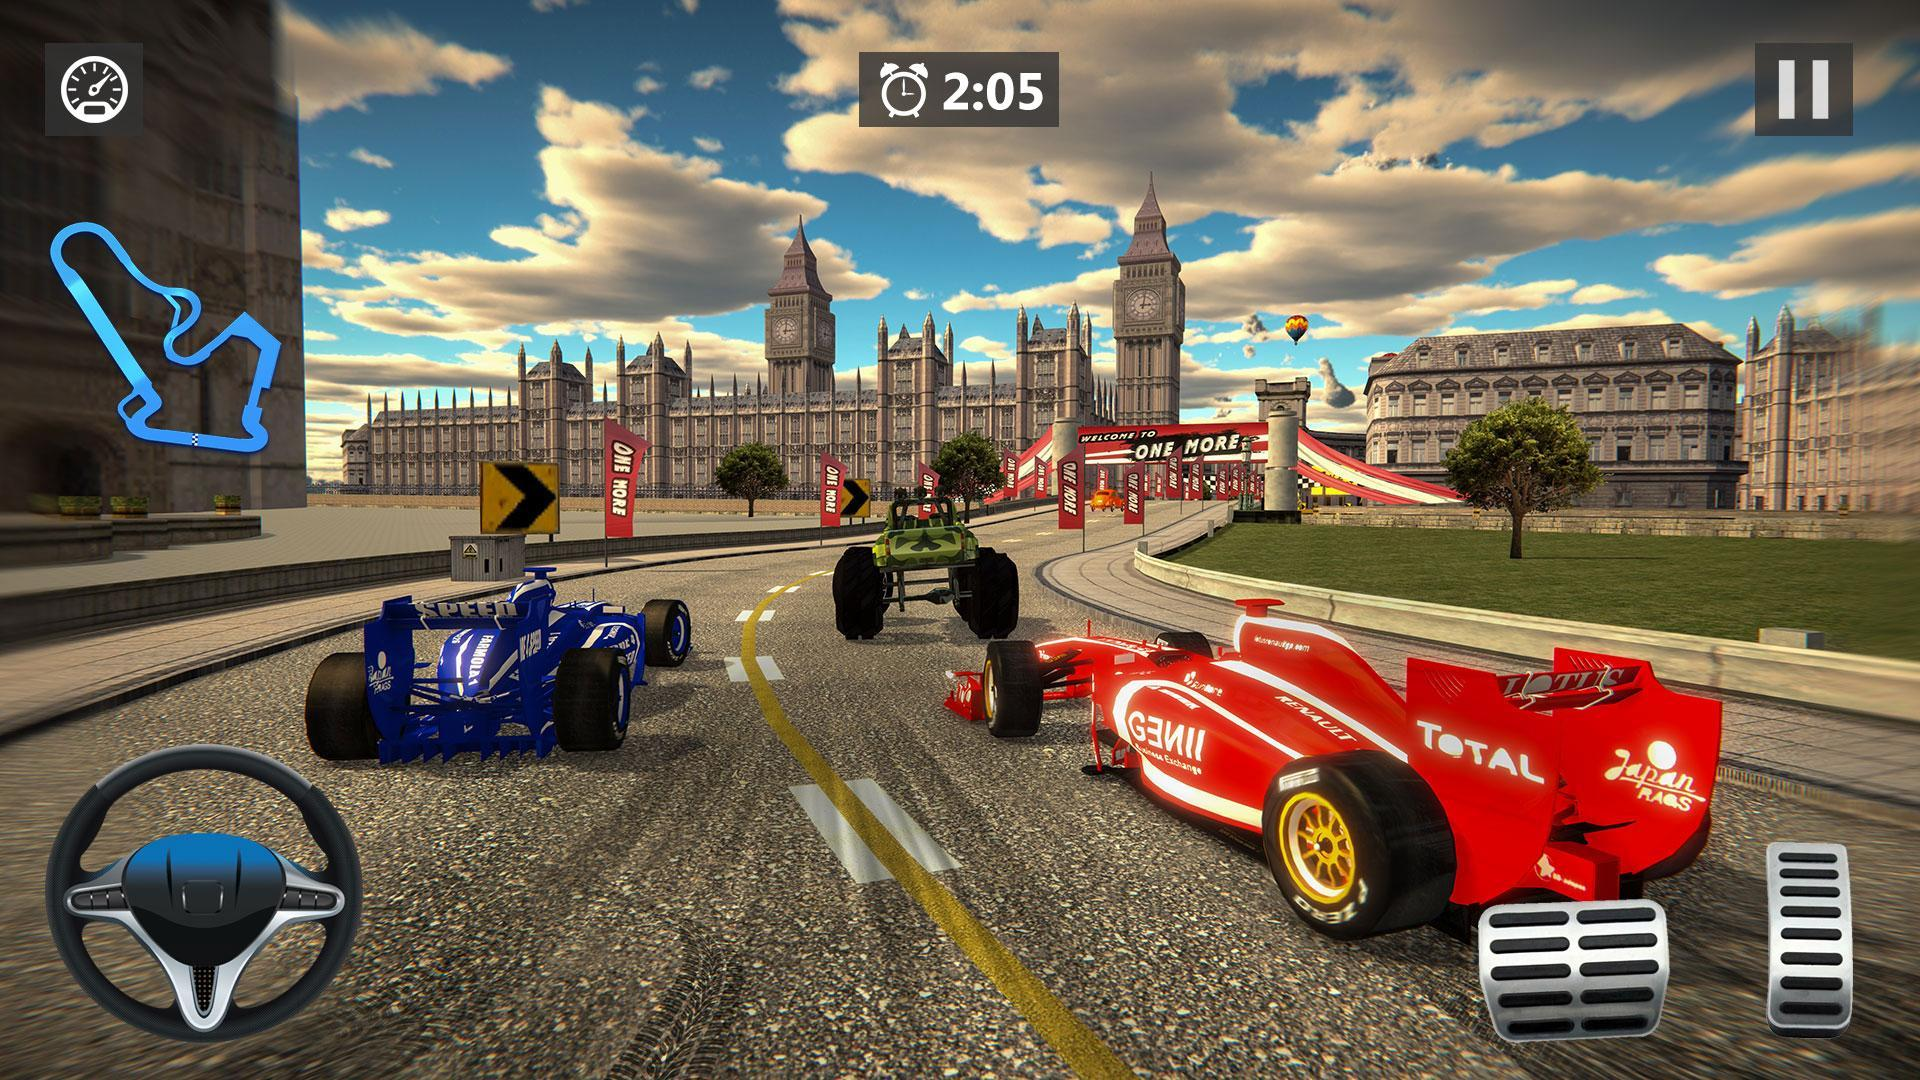 Real Formula Racing Championship :Free Racing Game for